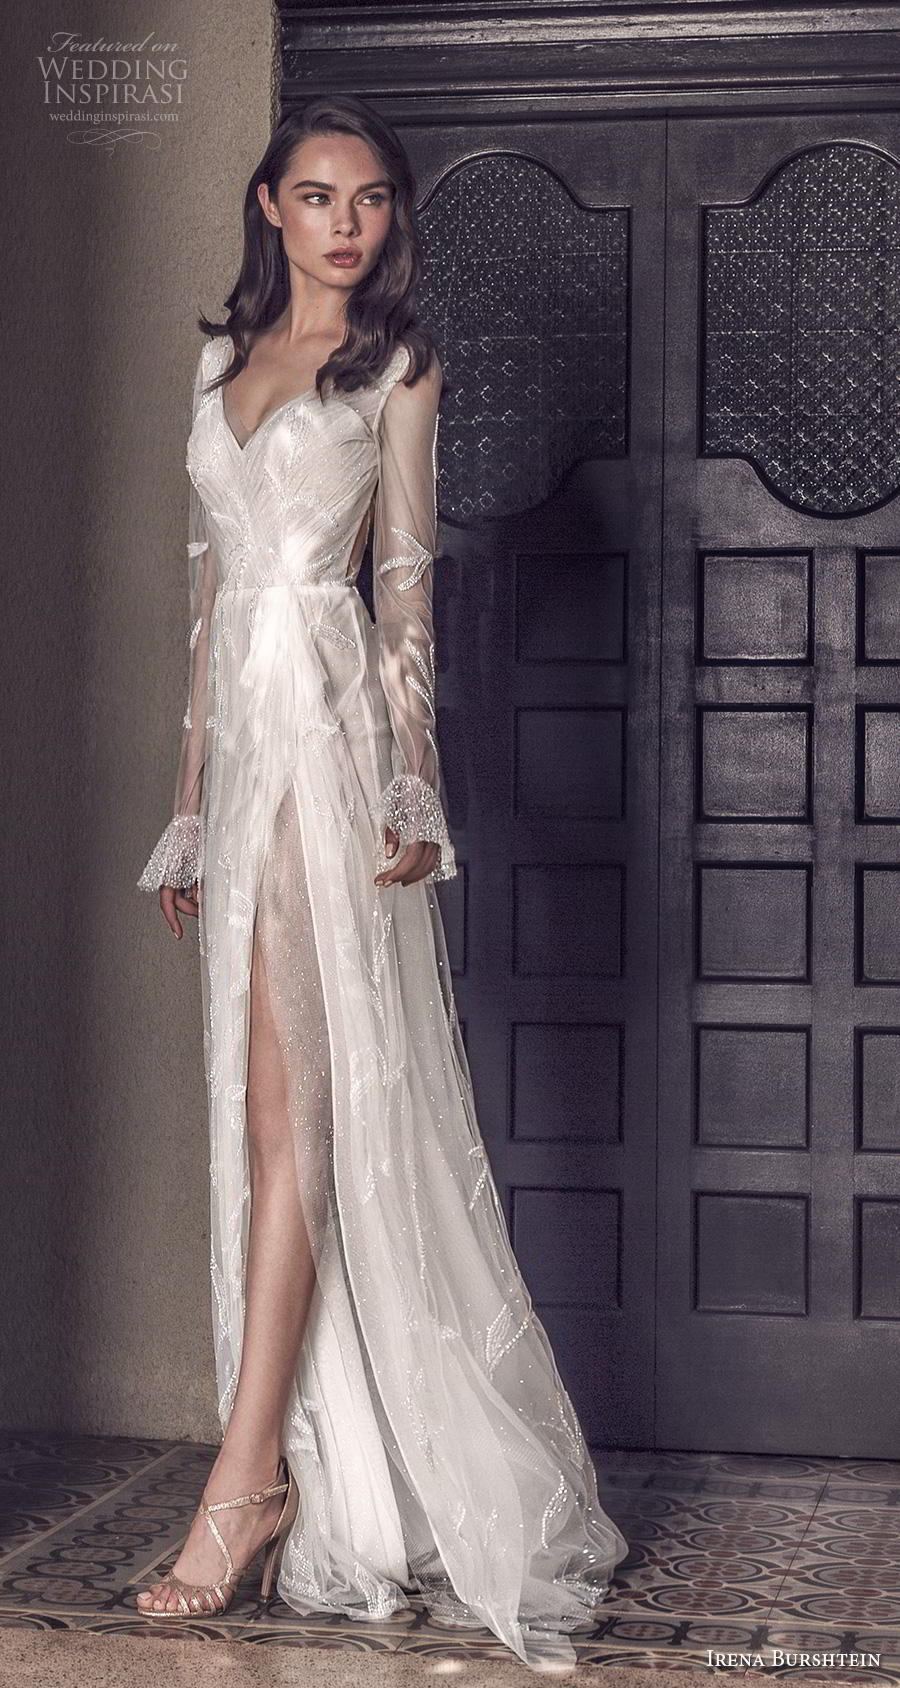 irena burshtein 2020 bridal long sheer sleeves deep v neck full embellishment slit skirt romantic sexy modified a  line wedding dress v back sweep train (5) mv